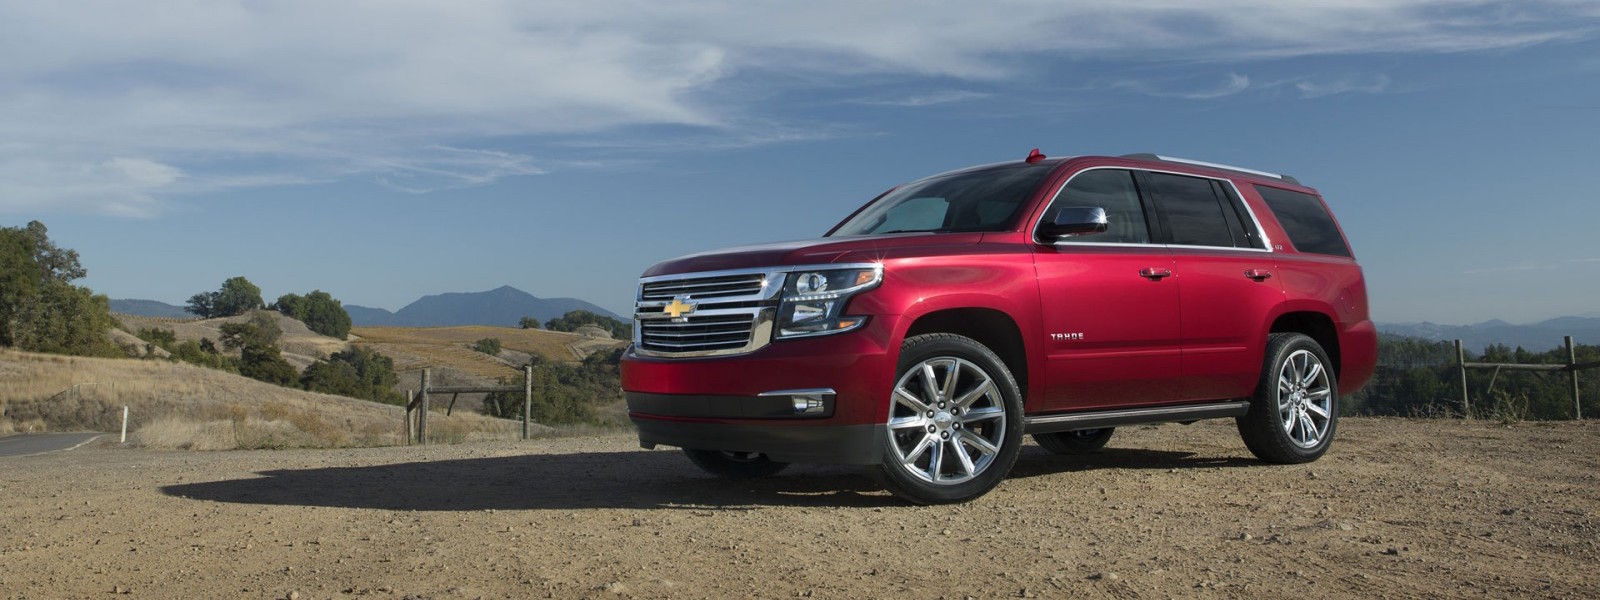 A red 2016 Chevy Tahoe is parked on a dirt pull of with distant mountains.